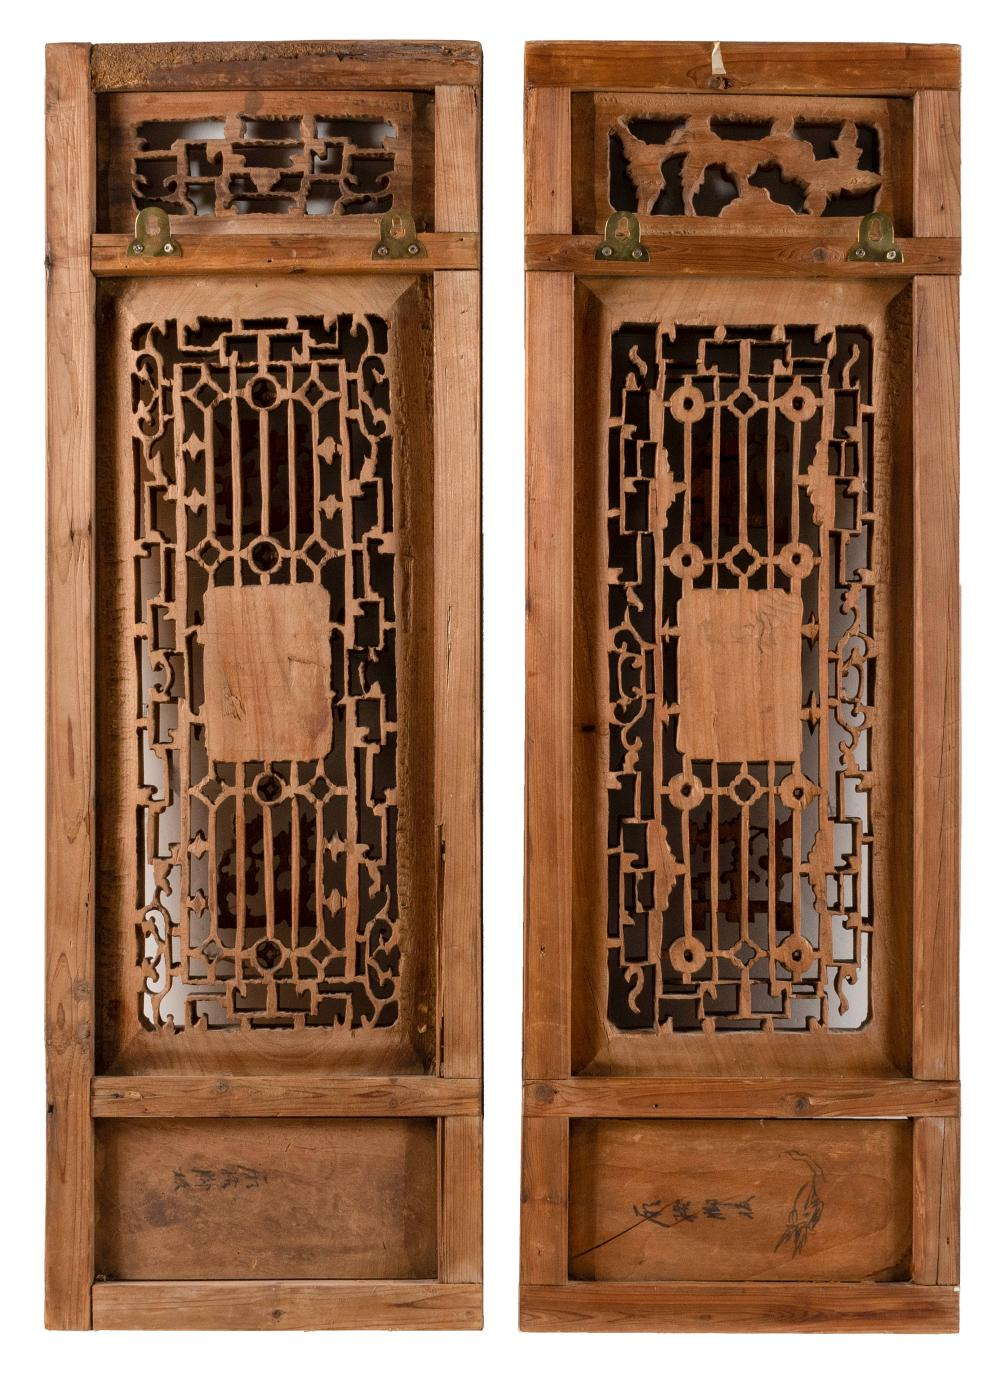 PAIR OF CHINESE CARVED WOOD PANELS Openwork-carved figural, floral and Greek fret design. Heights 36